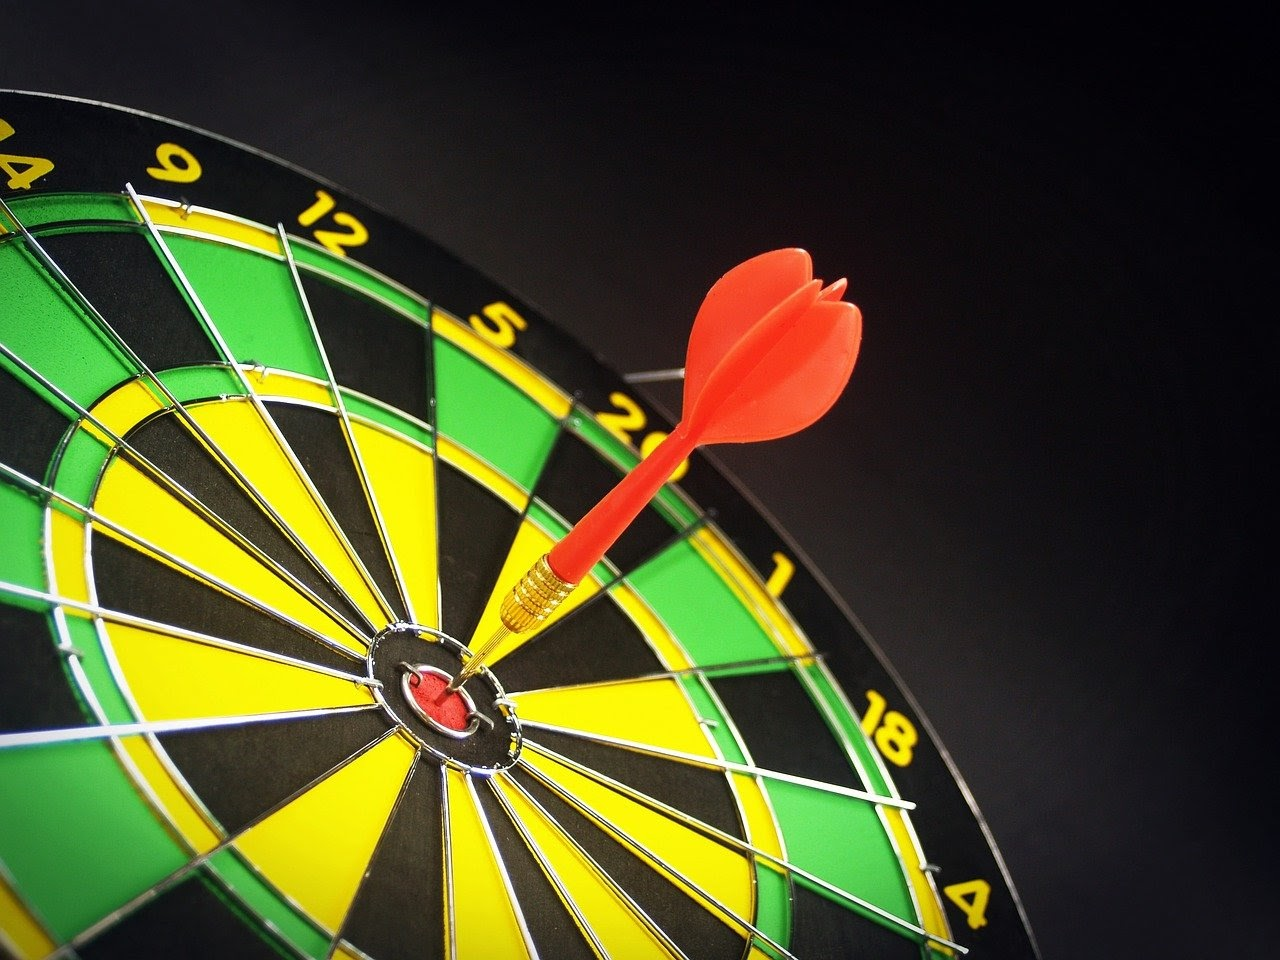 A dart within the bullseye range of a dartboard, which is a visualization of the effectiveness of segmentation for an email blast